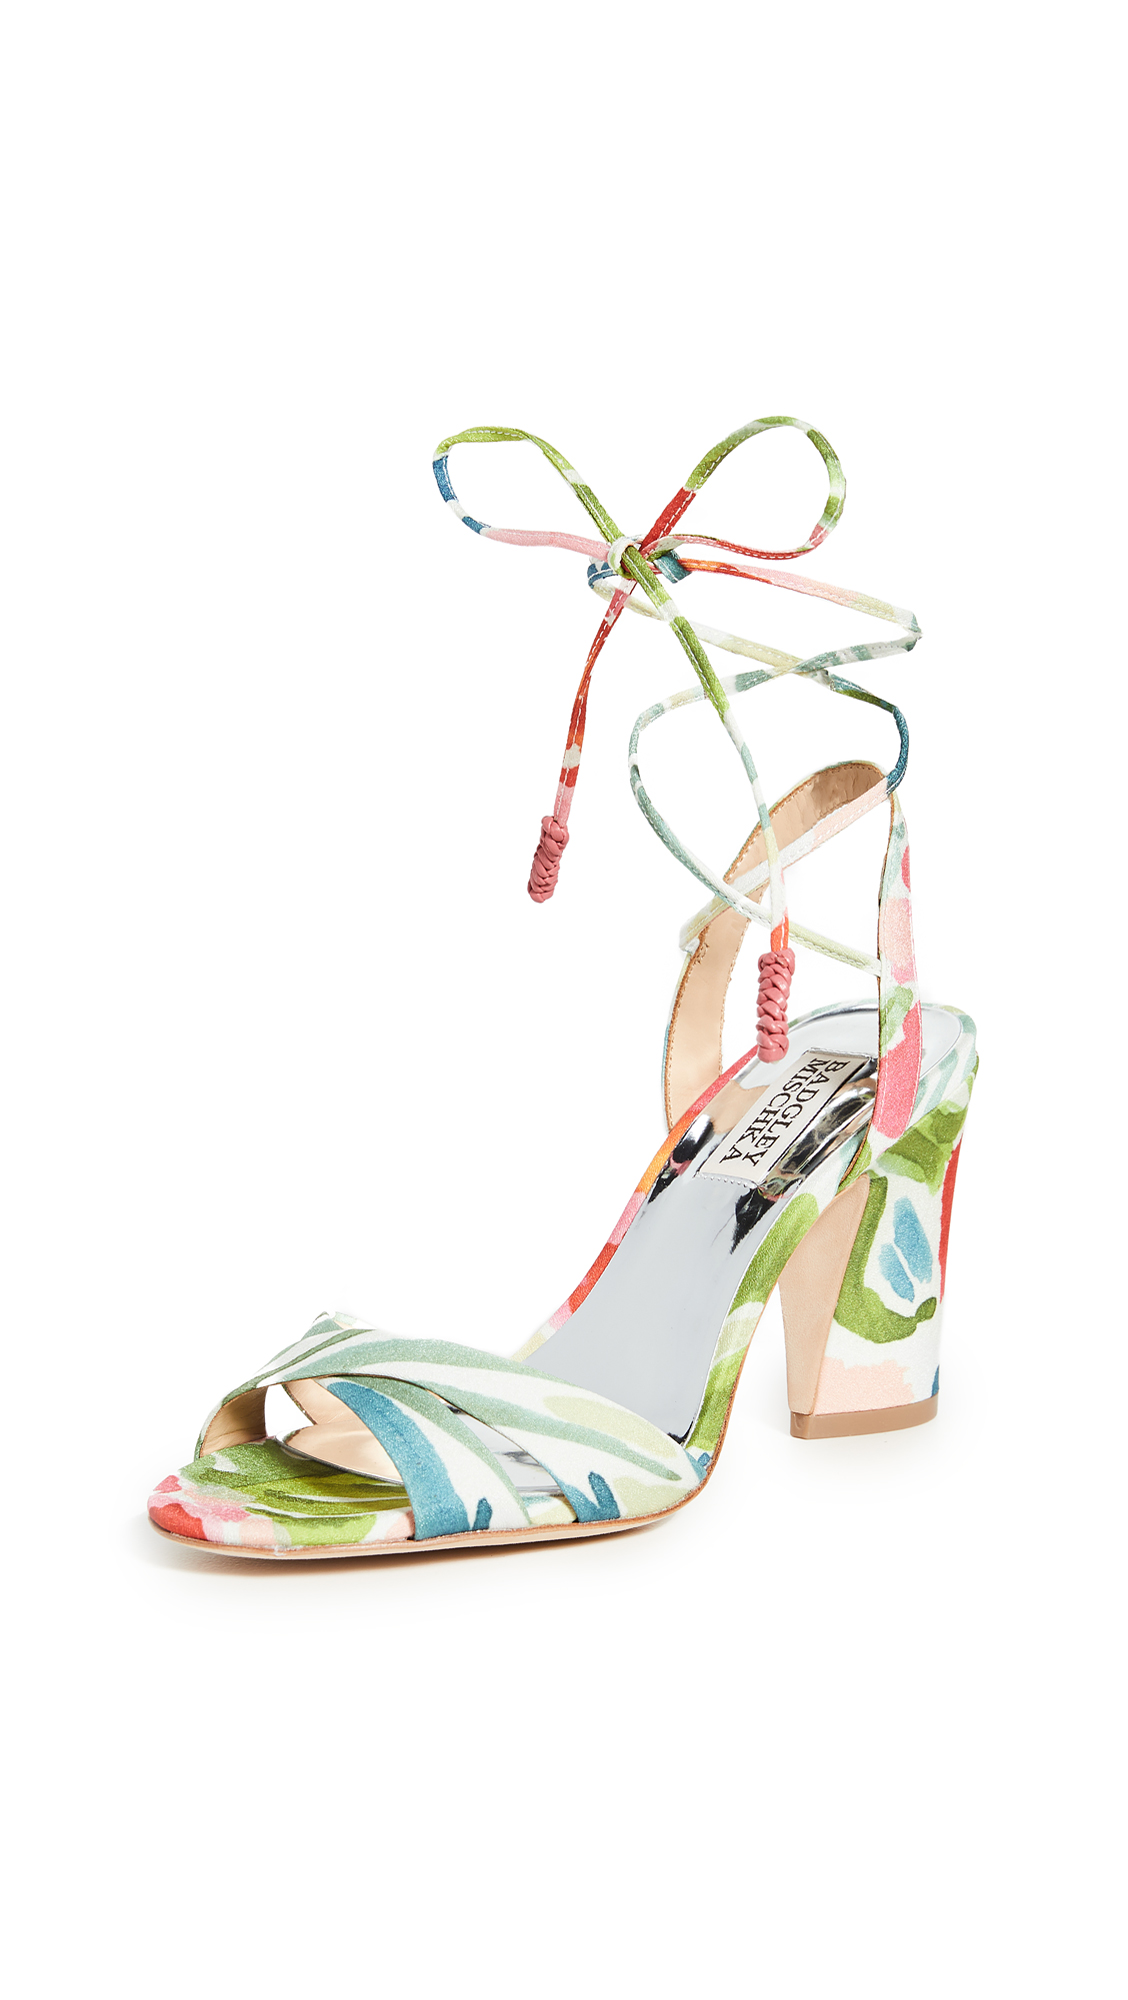 Badgley Mischka Journey Sandals - 50% Off Sale